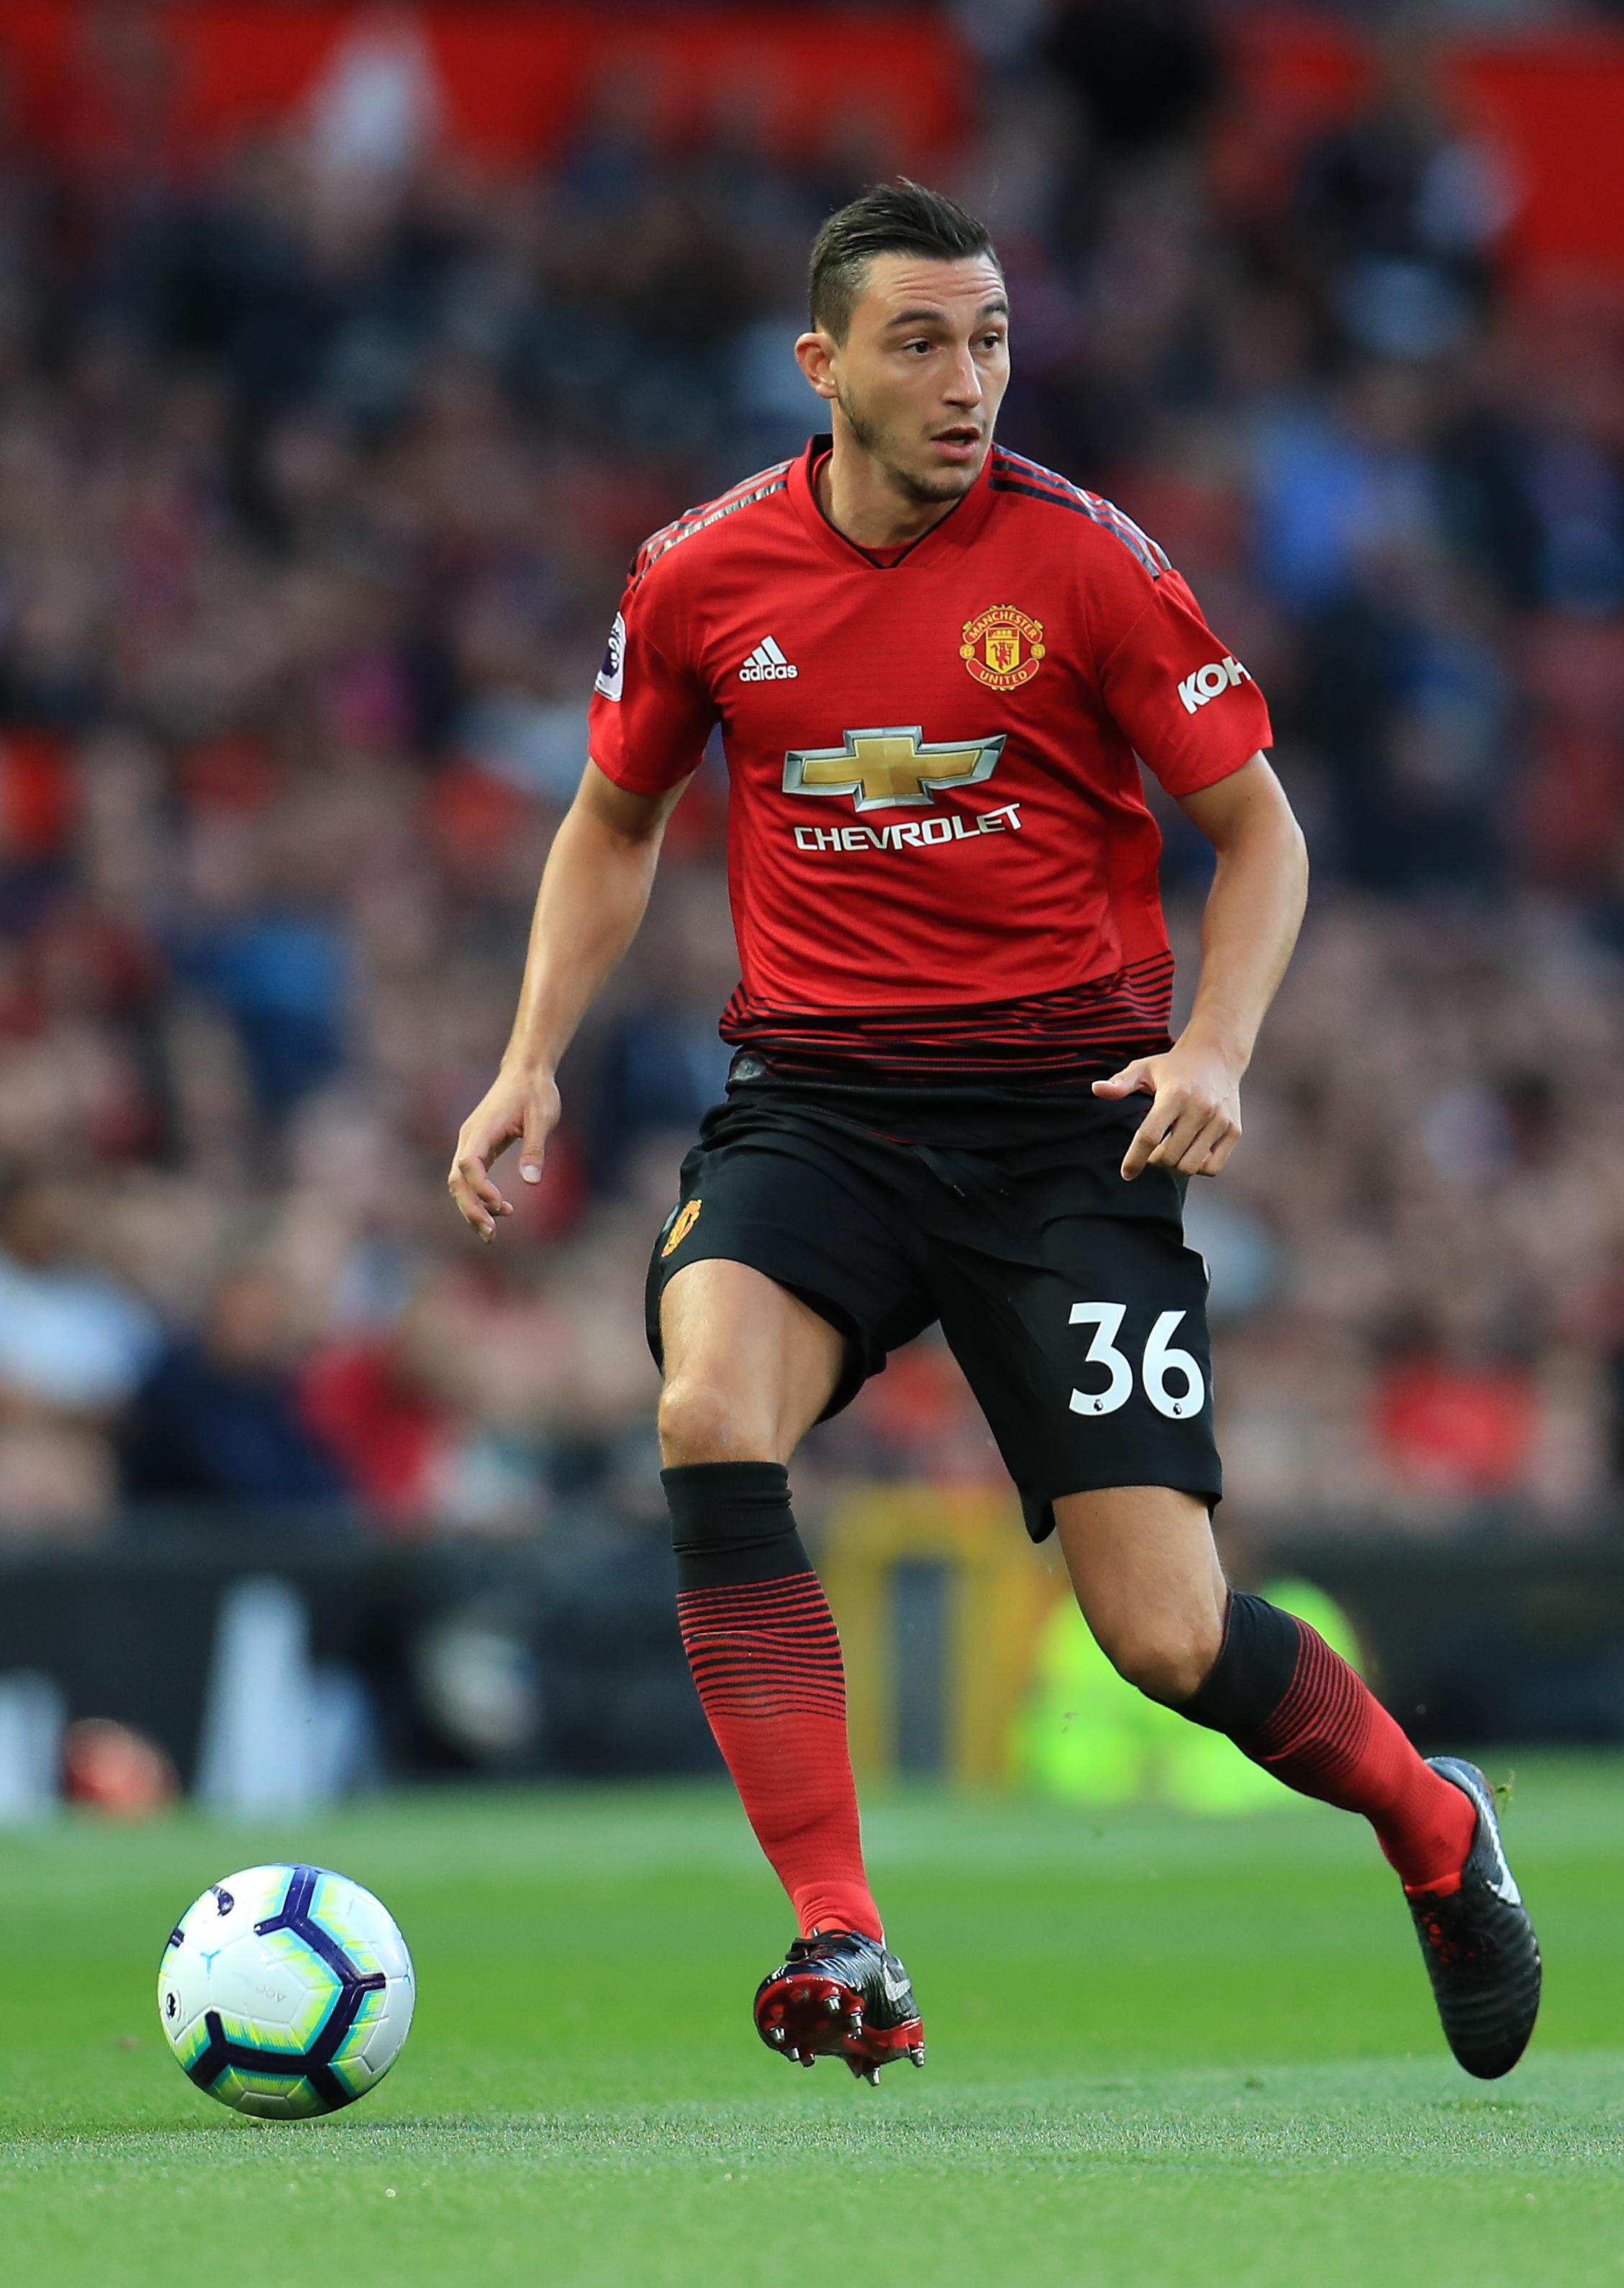 Claudio Ranieri is hoping to bring Darmian to Fulham in a bid to boost their defensive record- which at the moment is the worst in the Premier League